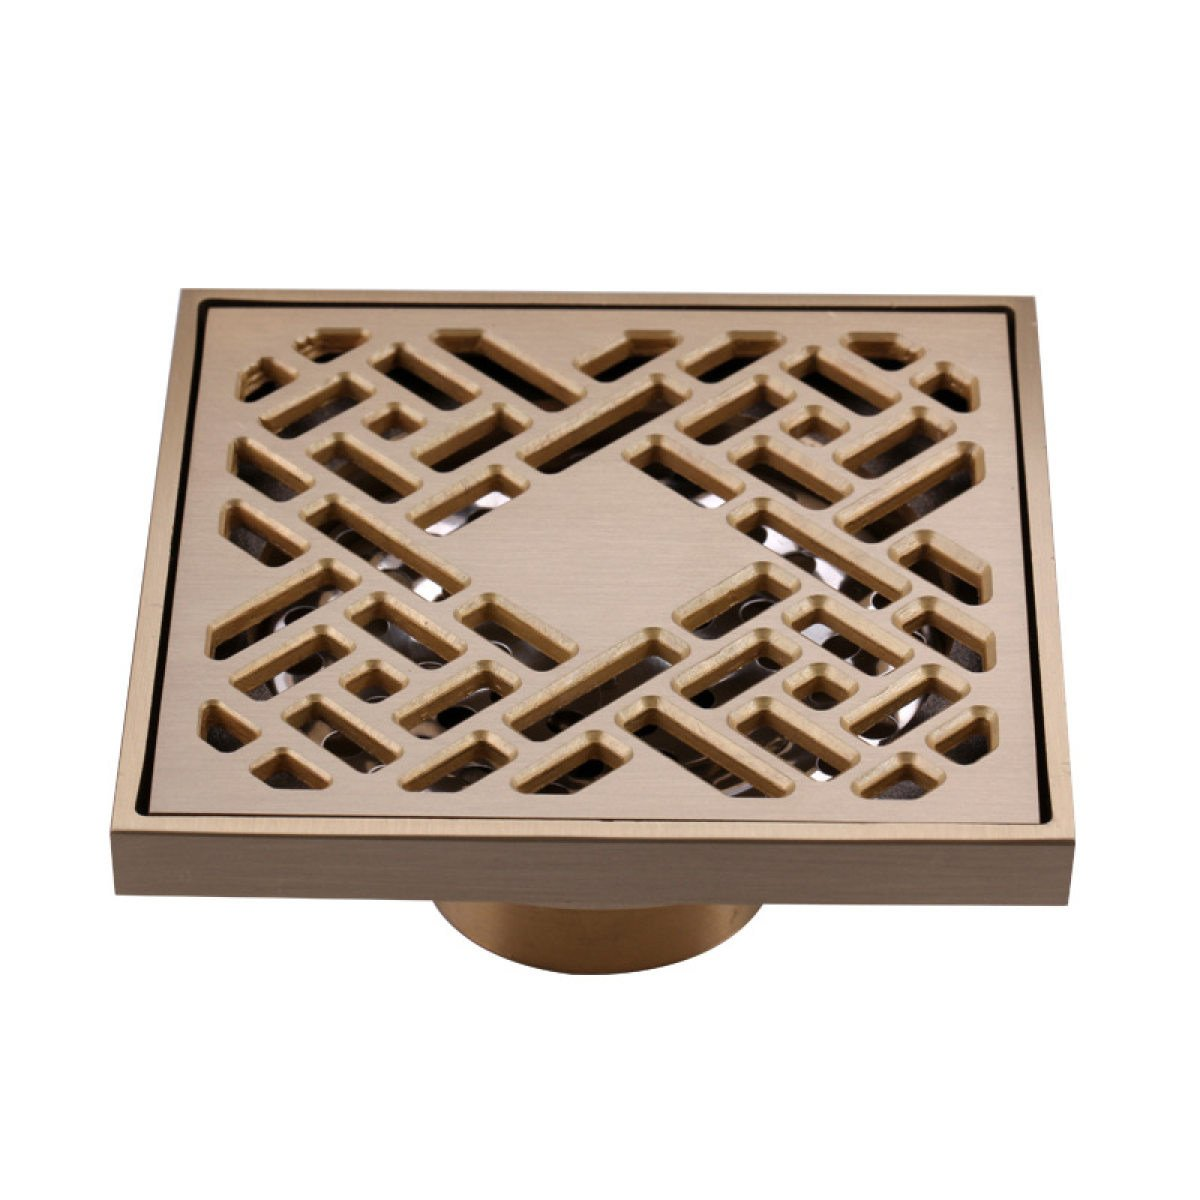 European Bathroom Floor Drain Shower Square Antique Copper Anti-odor Floor Drain Strainer Germ YouxianGongsi